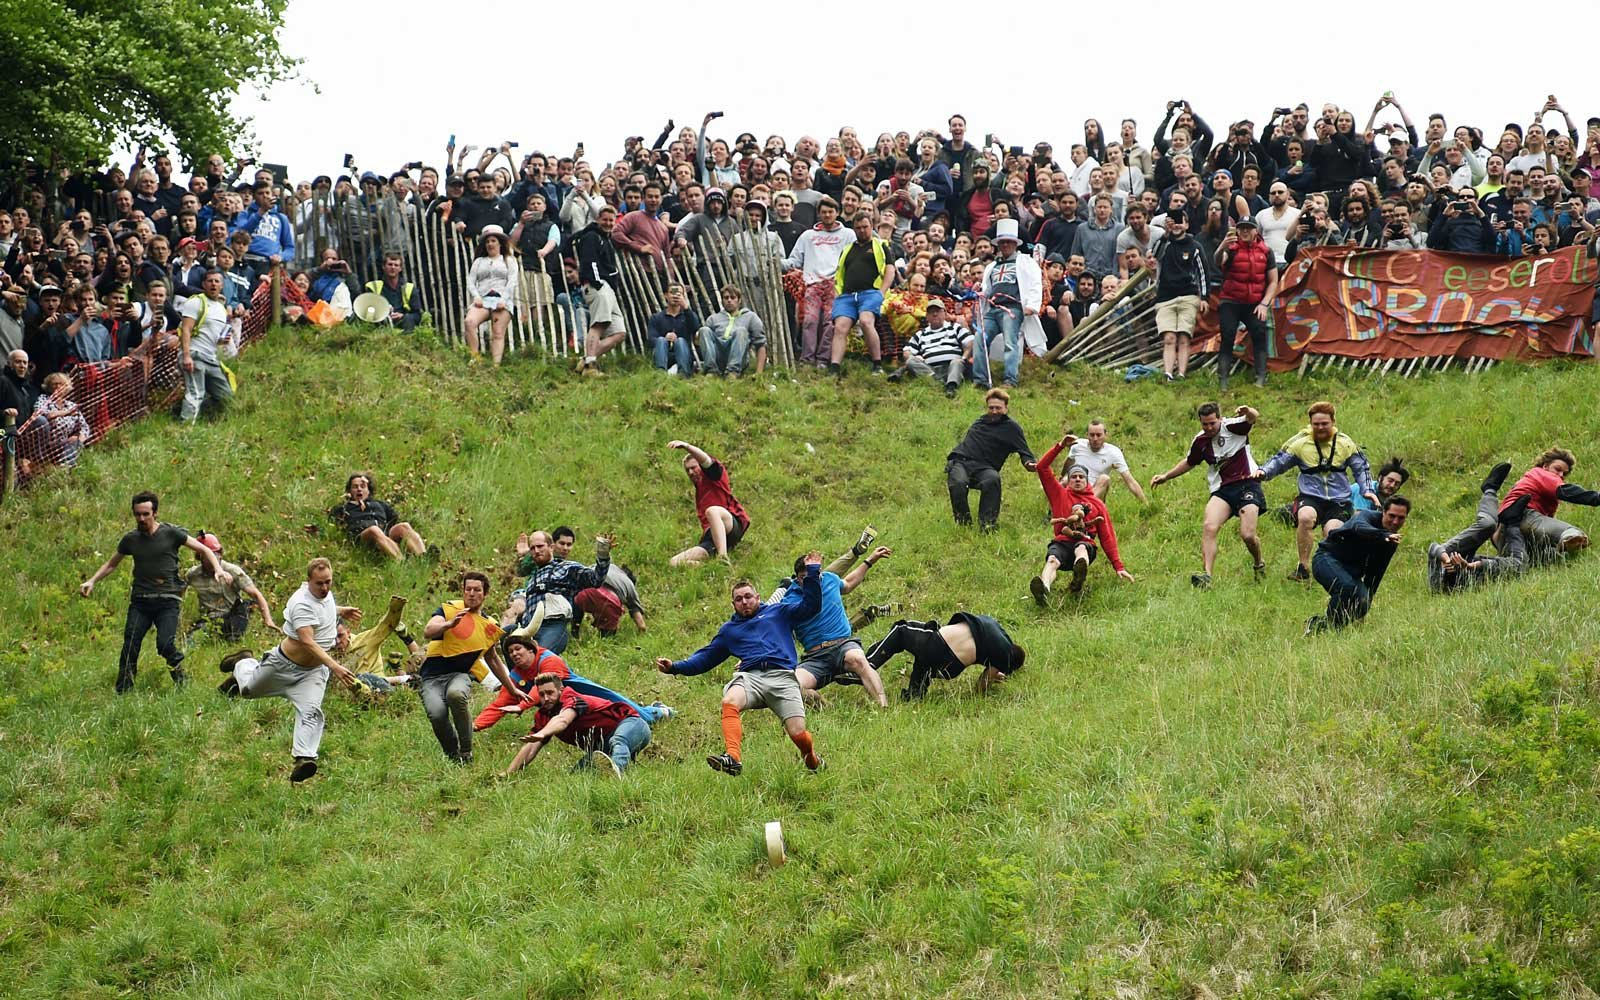 Competitors take part in the annual unofficial cheese rolling at Cooper's Hill in Brockworth, Gloucestershire